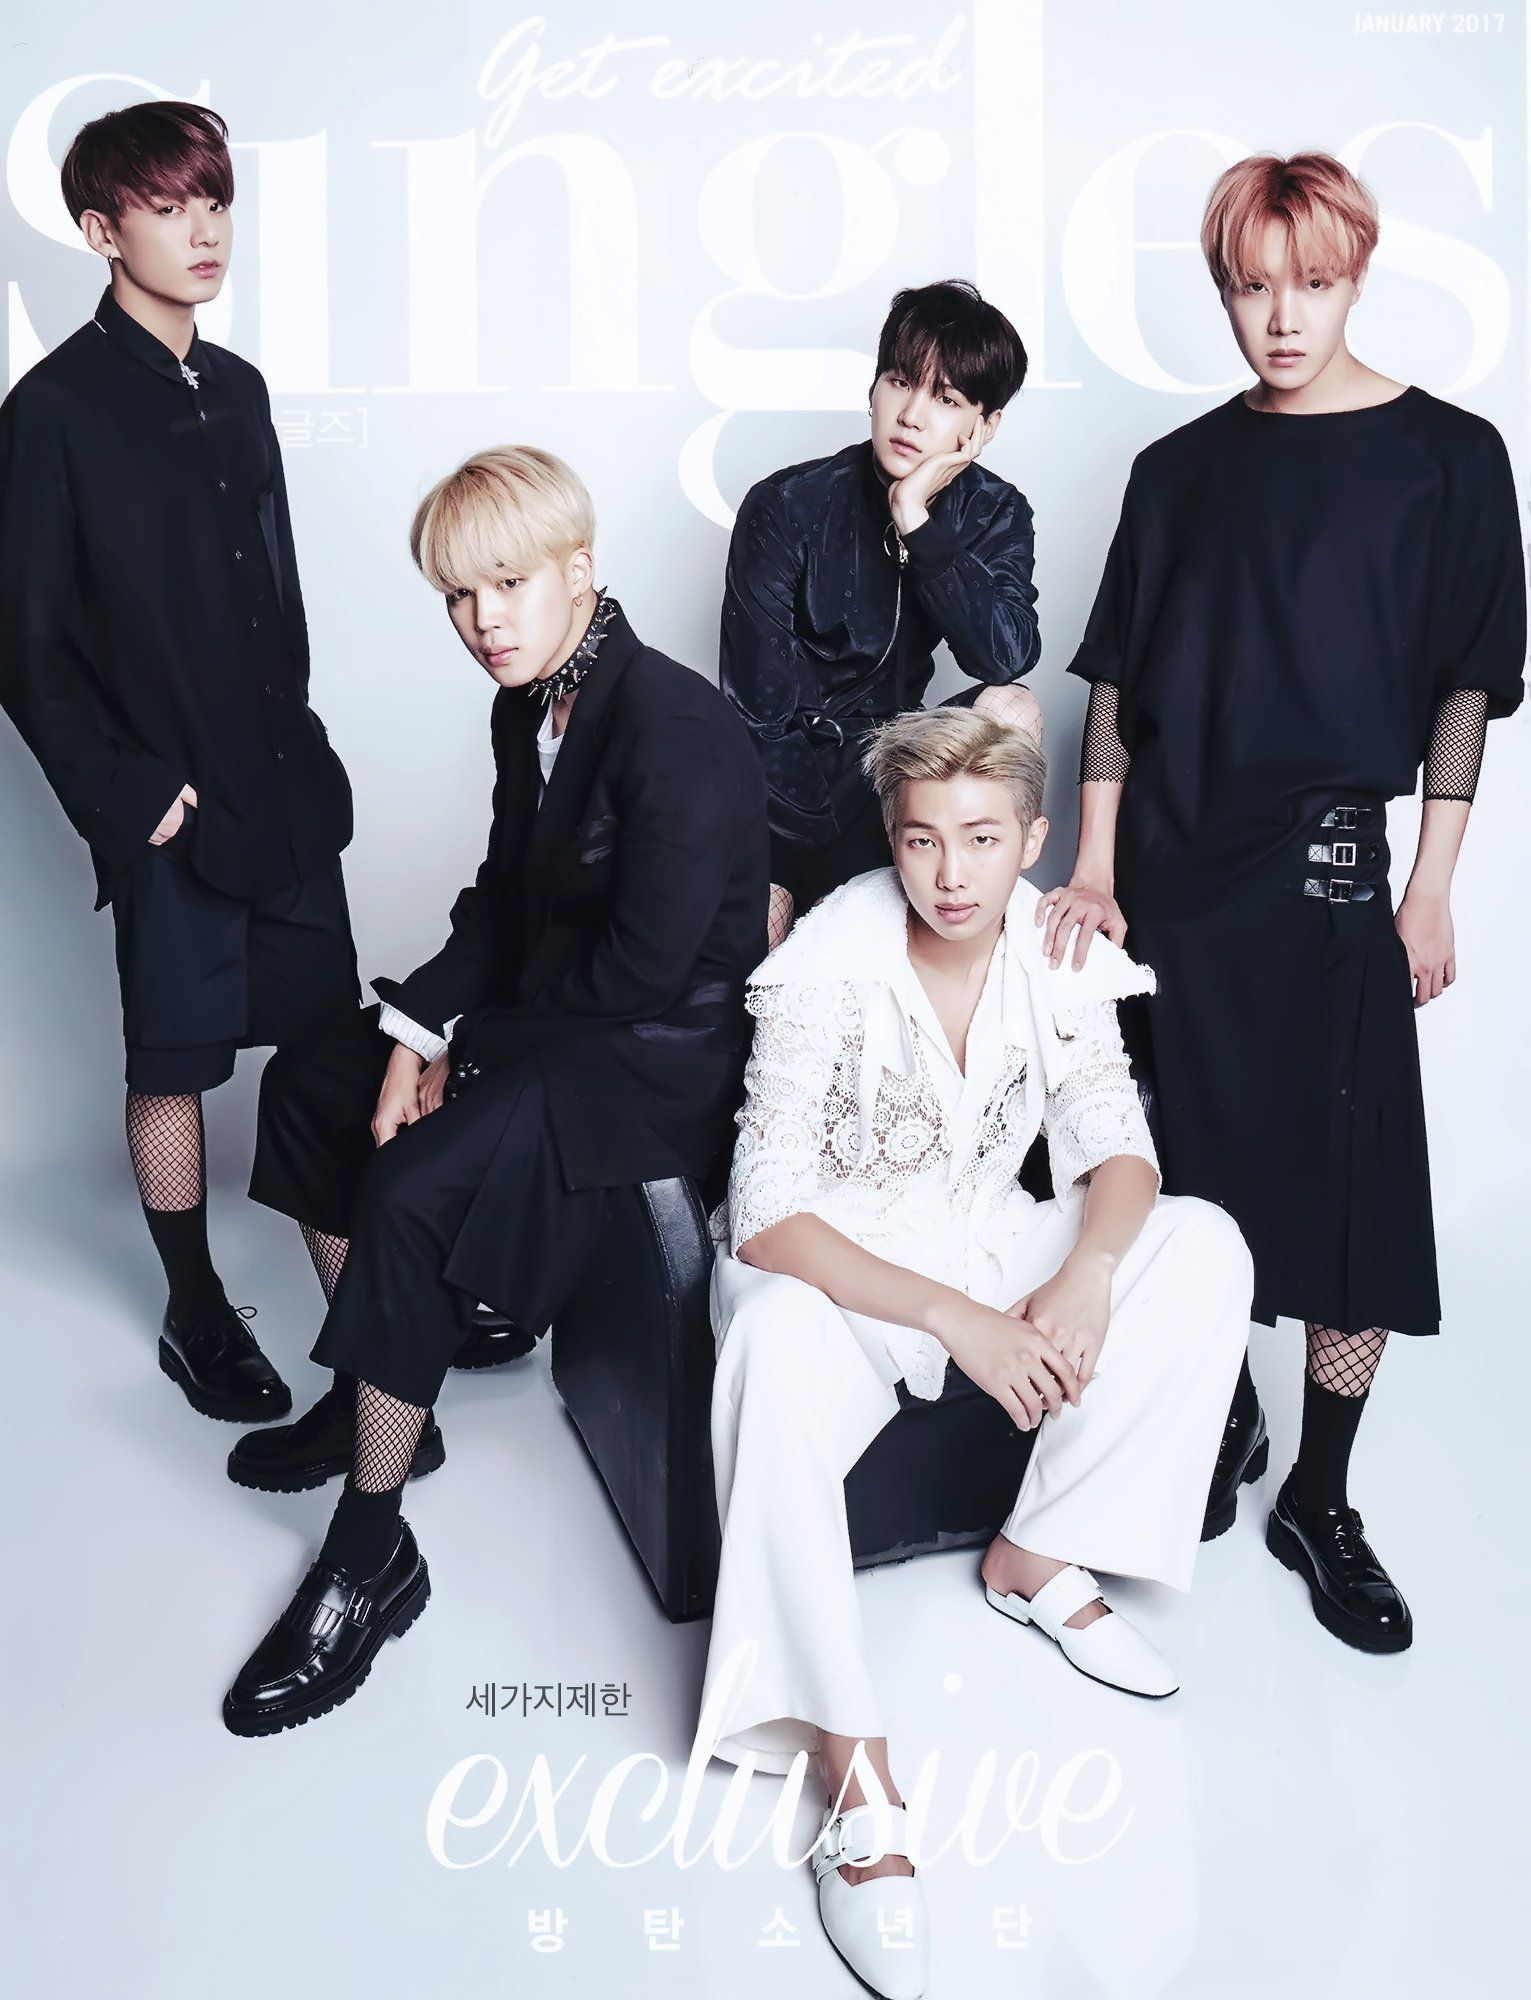 BTS for 'Singles' Magazine January 2017 issue [161217]